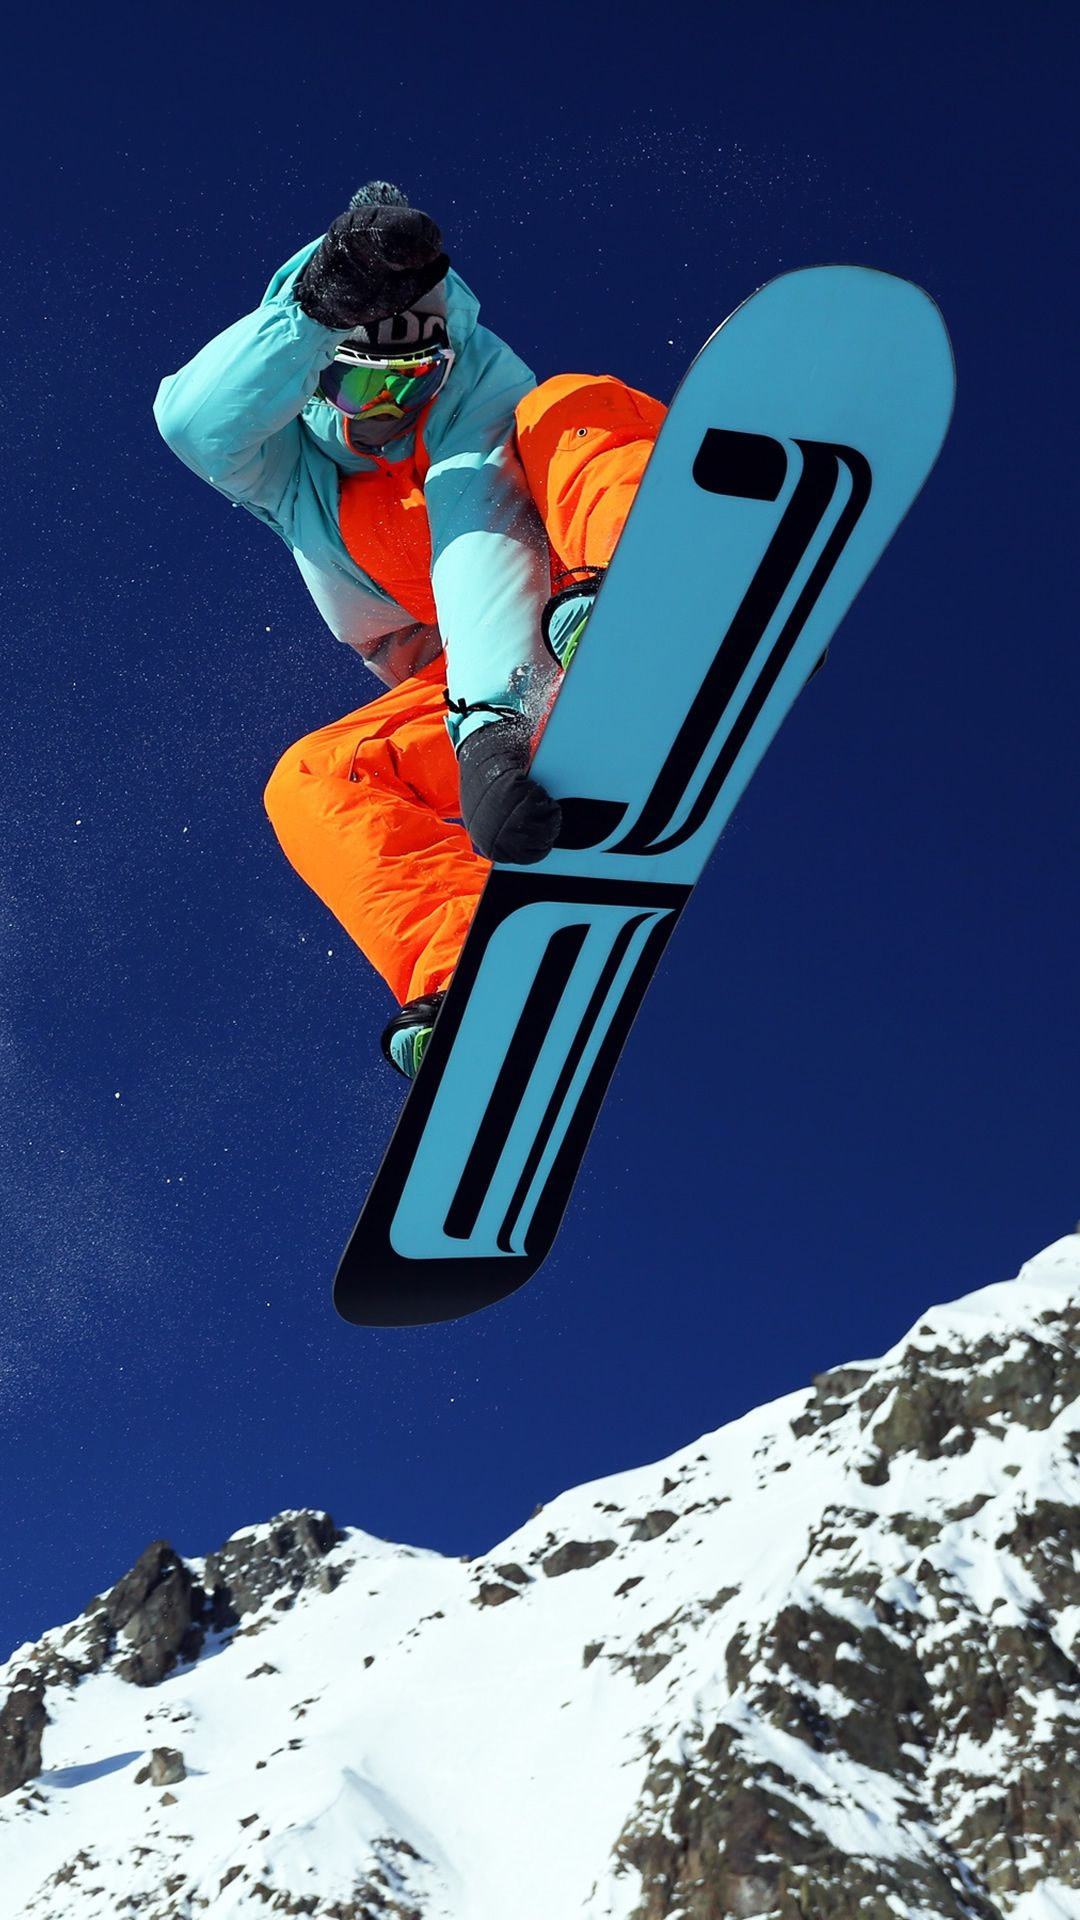 Mountain Skiing Iphone 7 Wallpaper Snowboarding